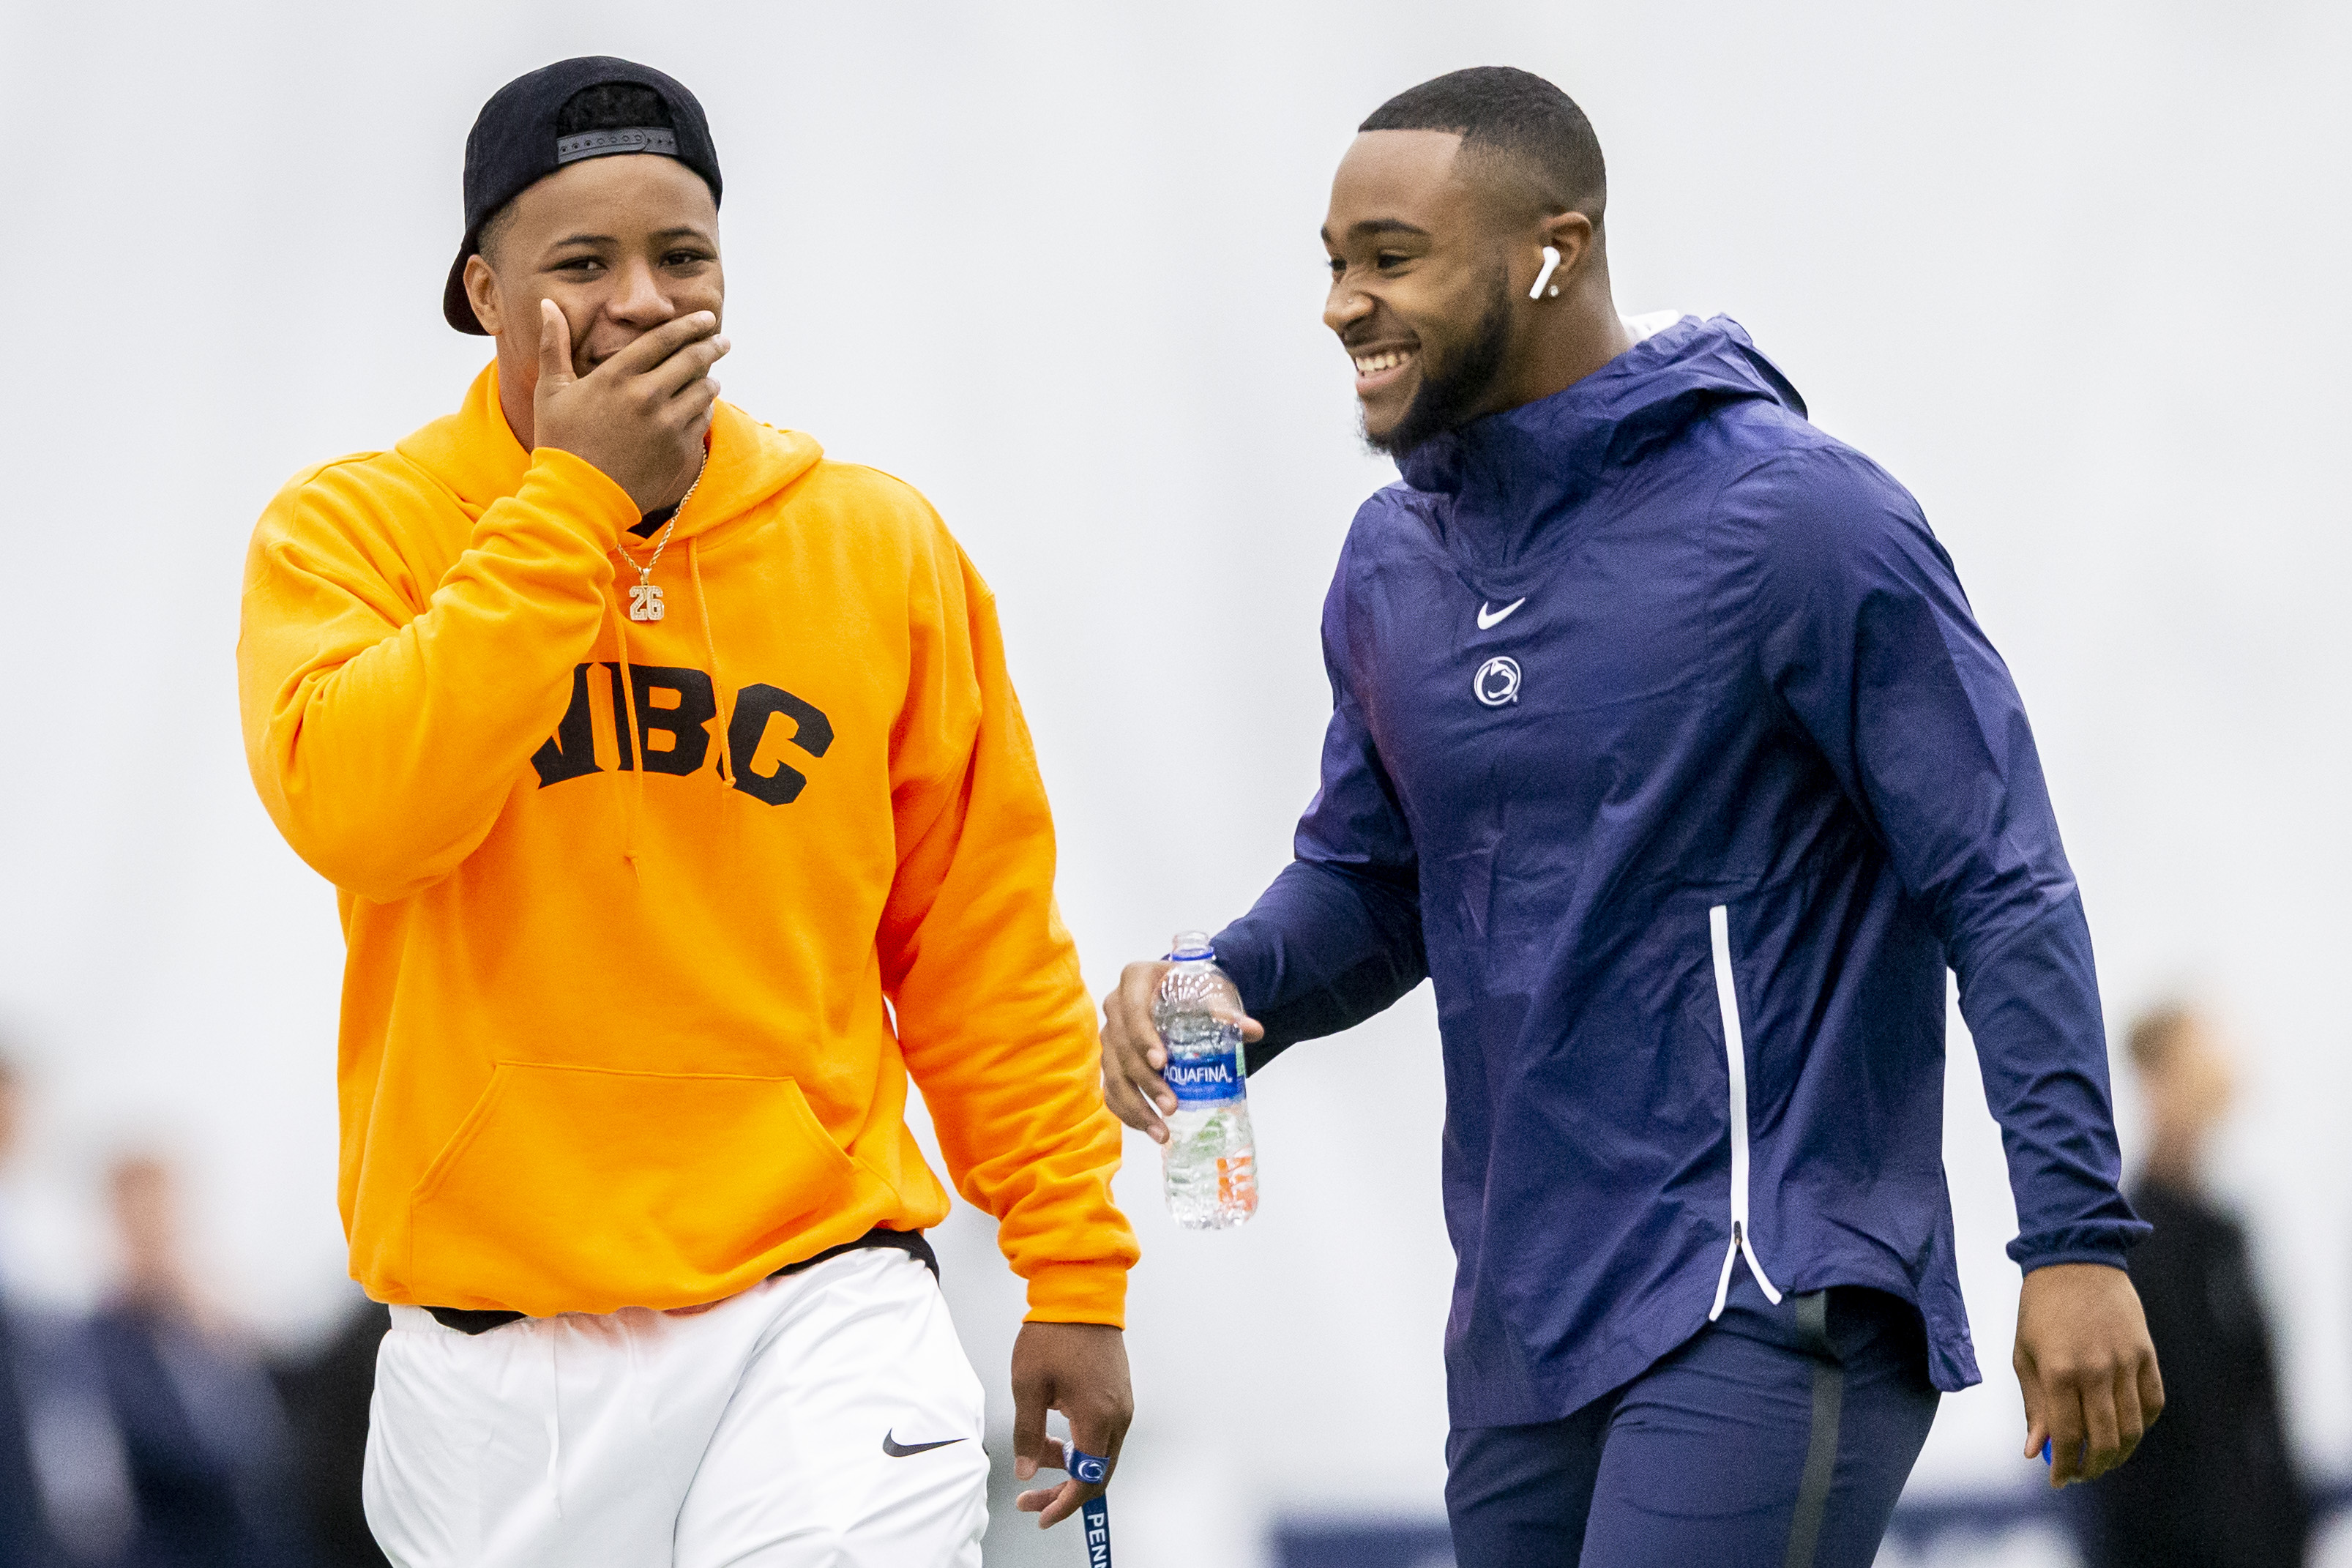 NFL Draft 2019: Eagles 'keeping in touch' with Penn State RB Miles Sanders, who is finally out of Saquon Barkley's shadow | What about Steelers?